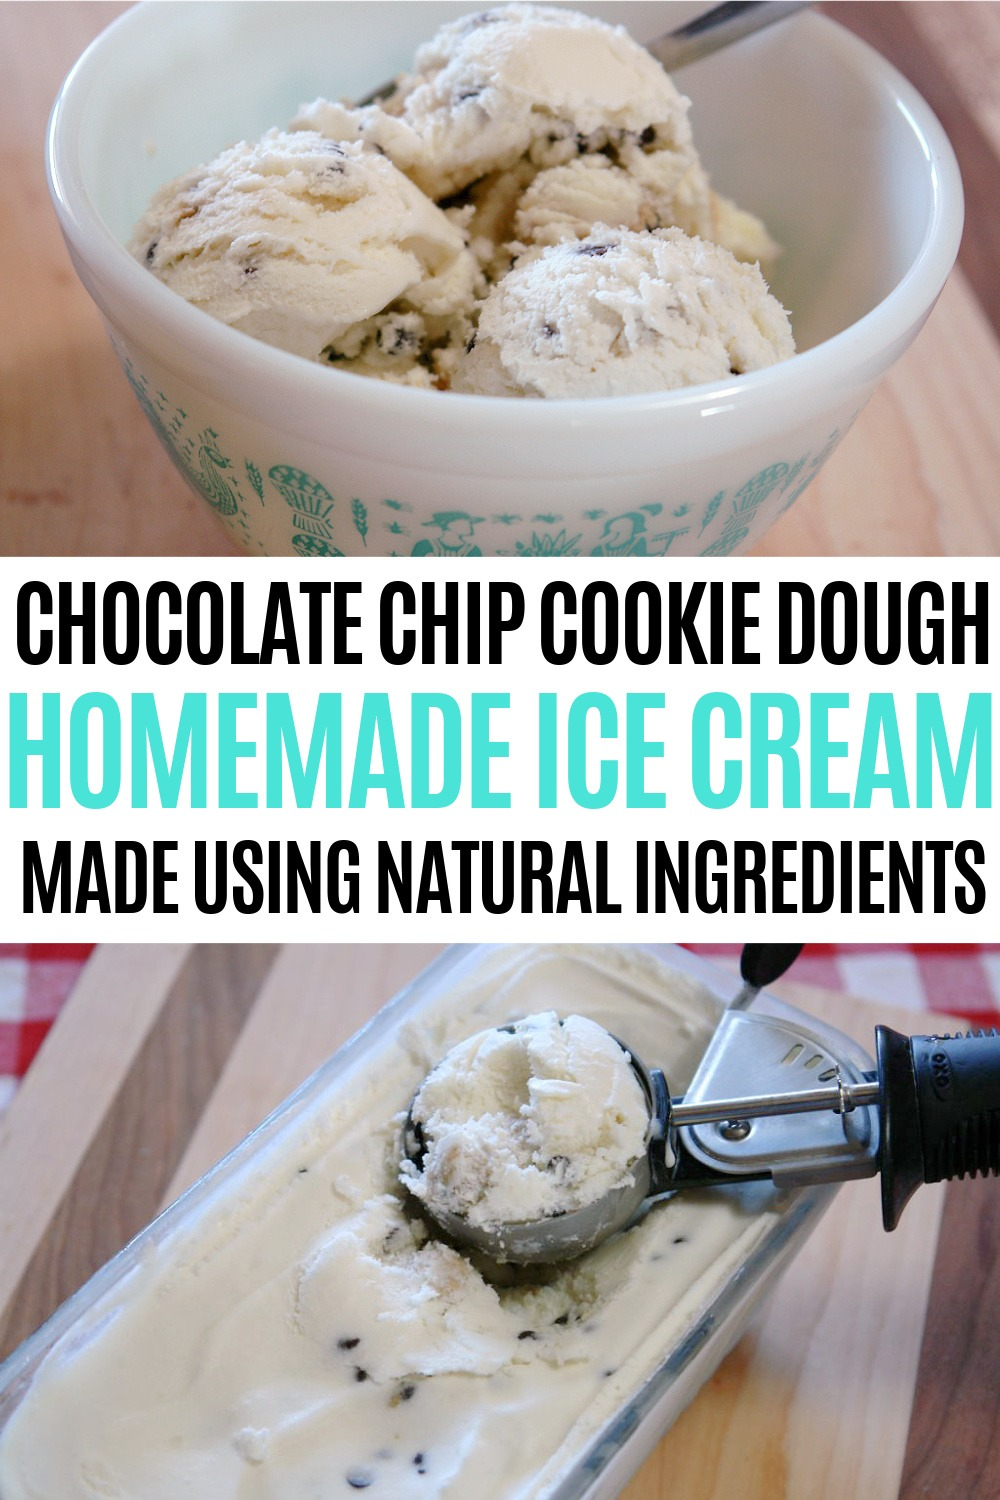 Homemade chocolate chip cookie dough ice cream, kitchenaid ice cream recipe, egg-less ice cream recipe